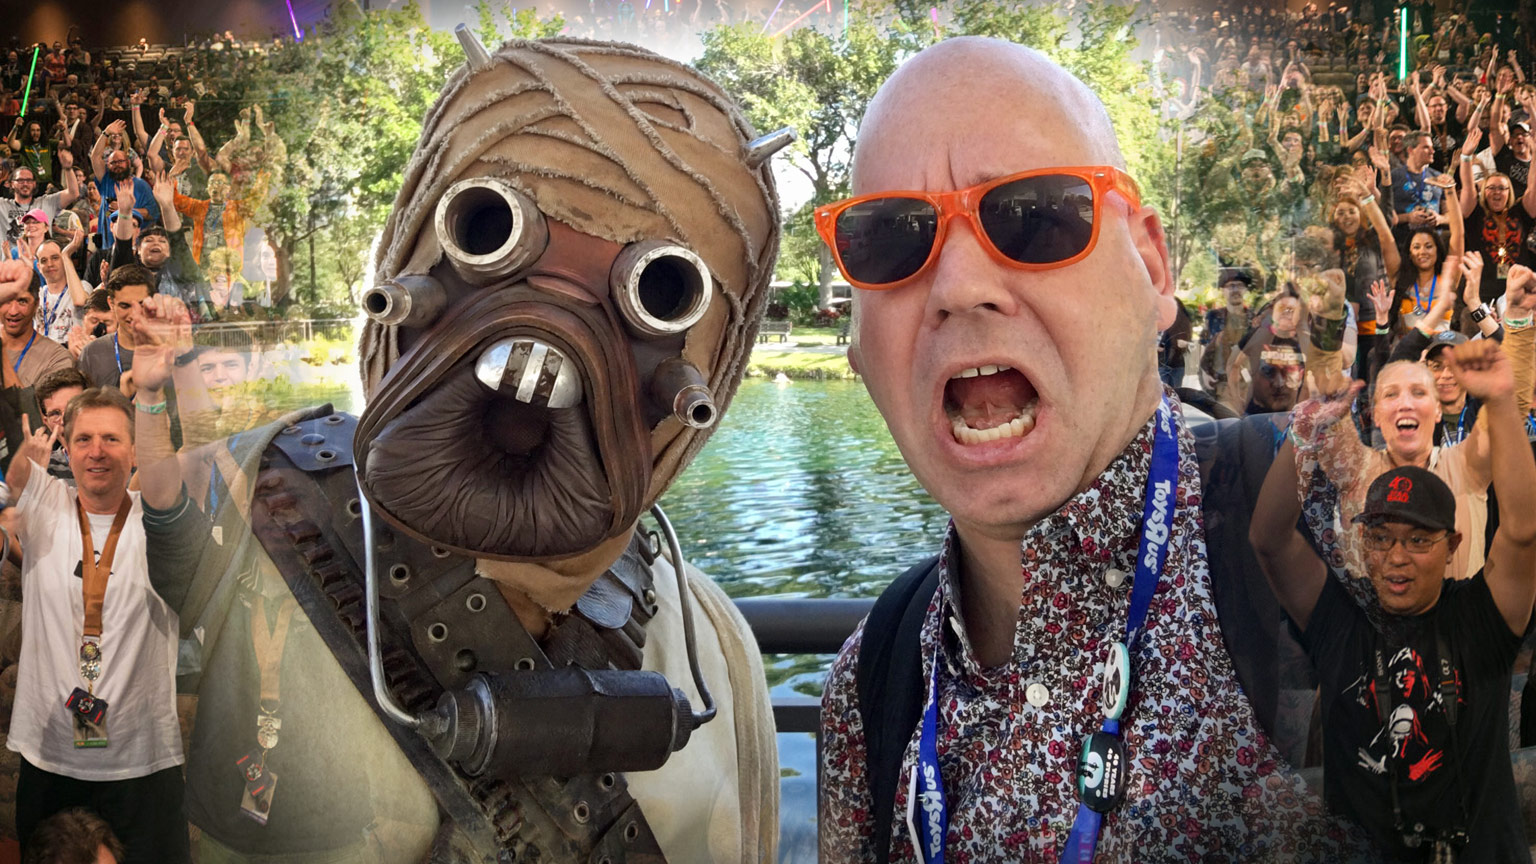 Jason Fry with a Tusken Raider cosplayer at Star Wars Celebration.